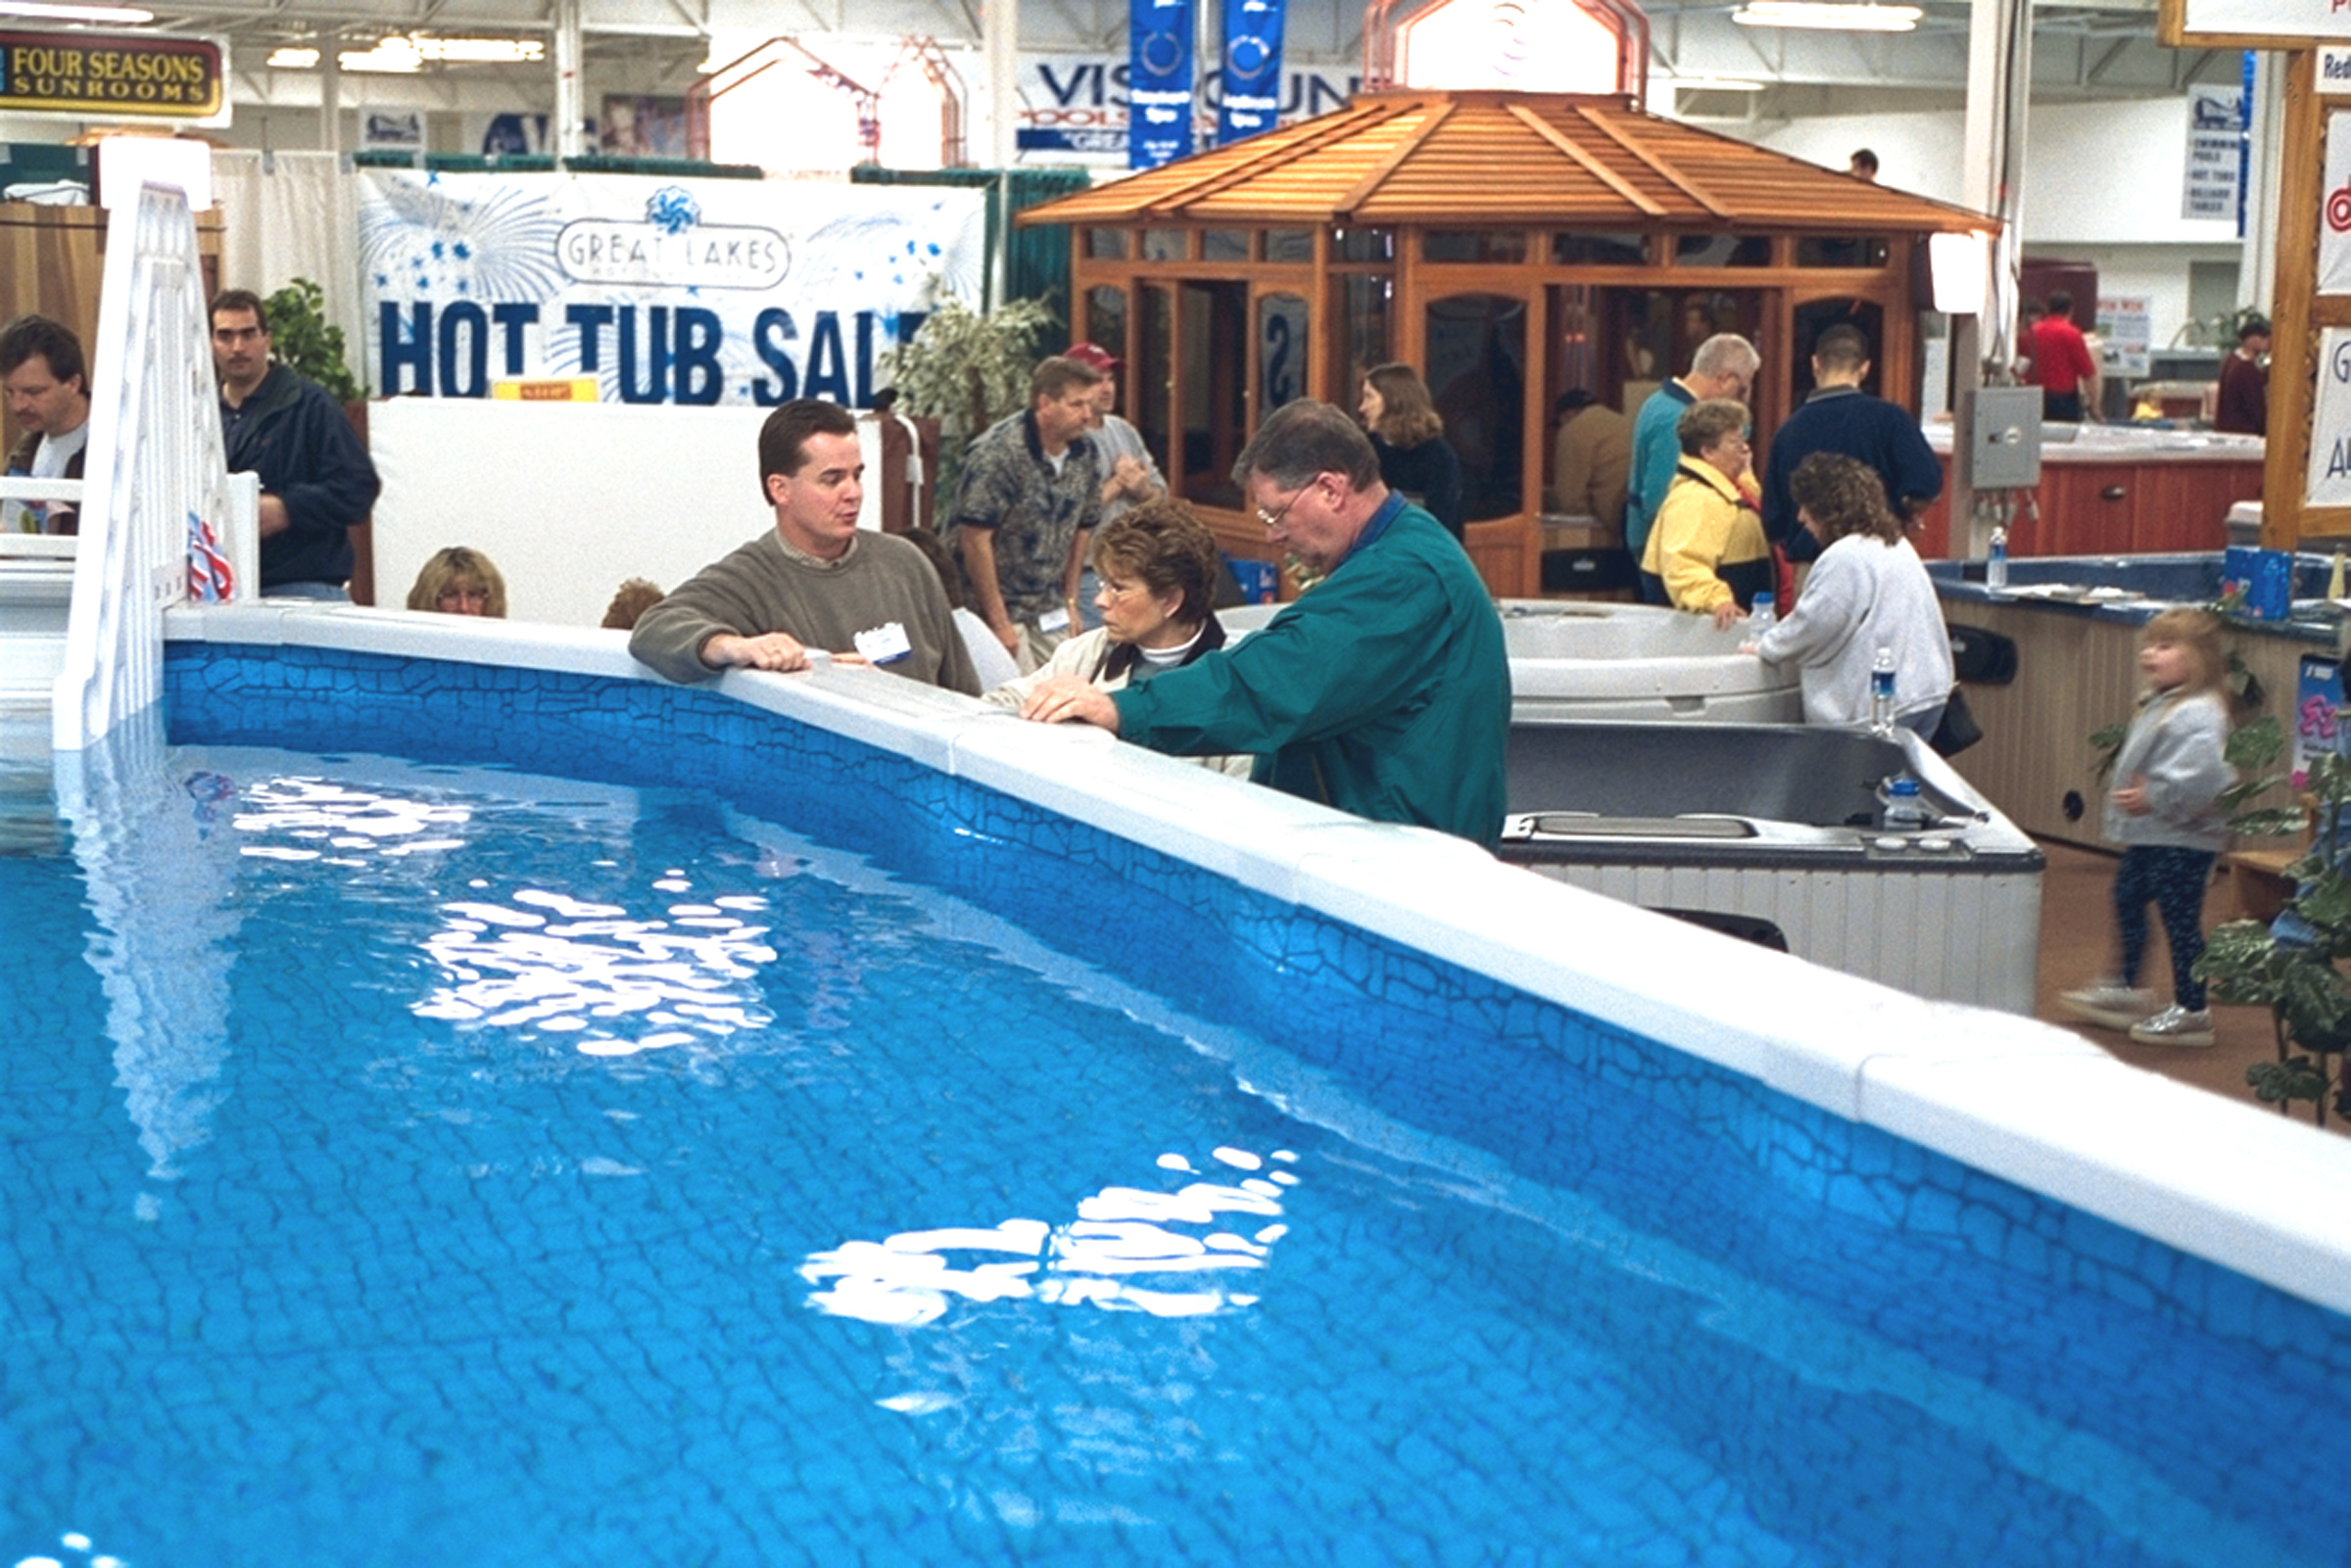 get ready for summer at novi backyard pool spa show